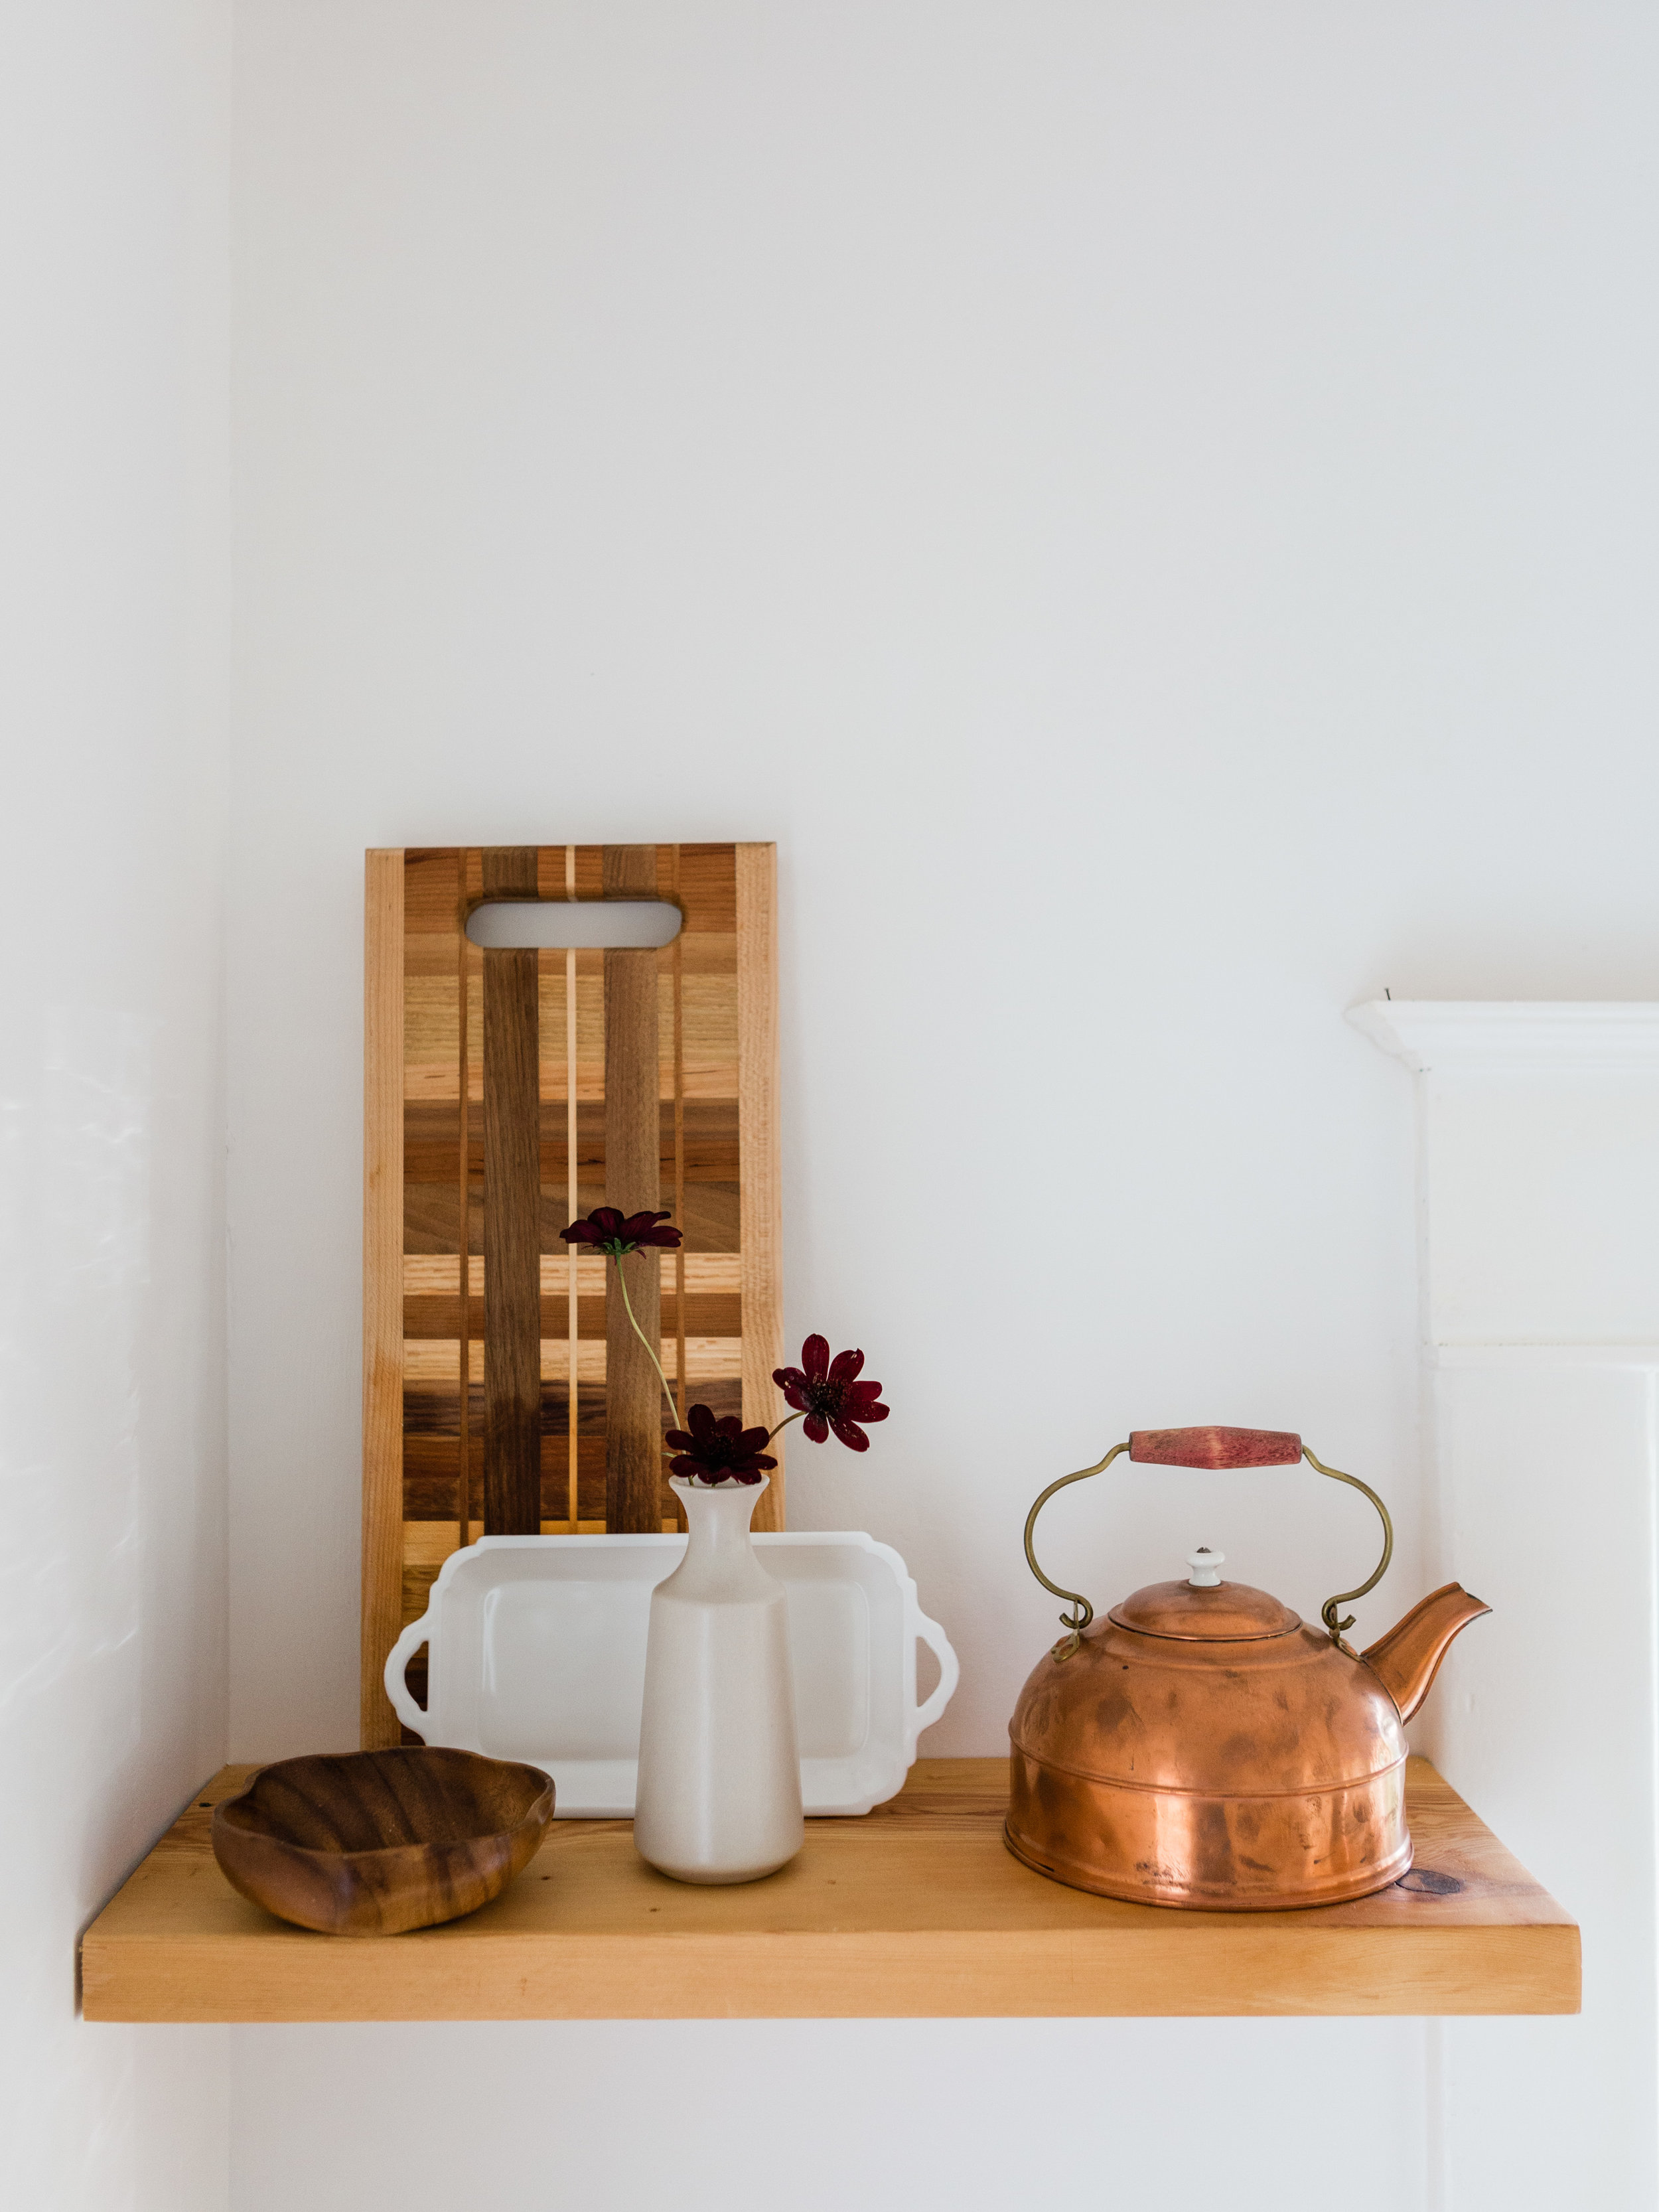 Simple and minimal open shelves in kitchen from Foragedhome.com